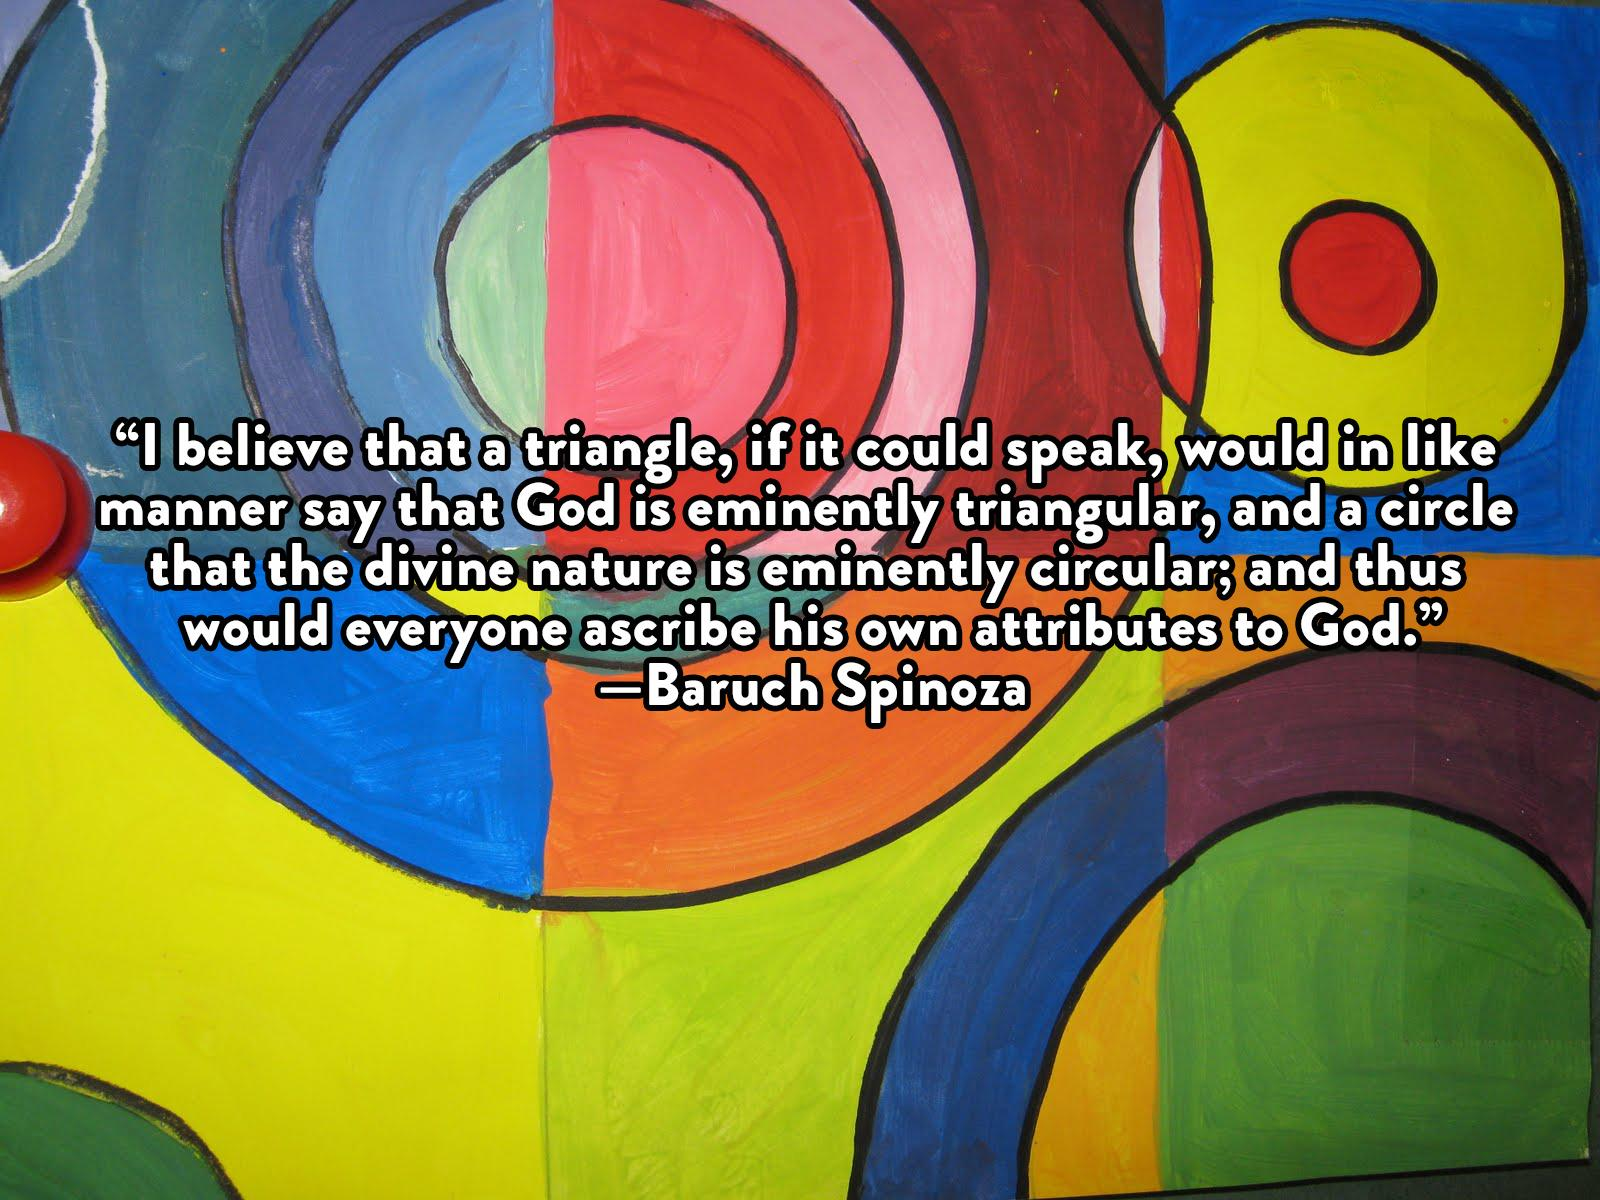 """I believe that a triangle, if it could speak, would say that God is eminently triangular… and thus would everyone ascribe his own attributes to God.""—Baruch Spinoza [1600×1200] [OC]"